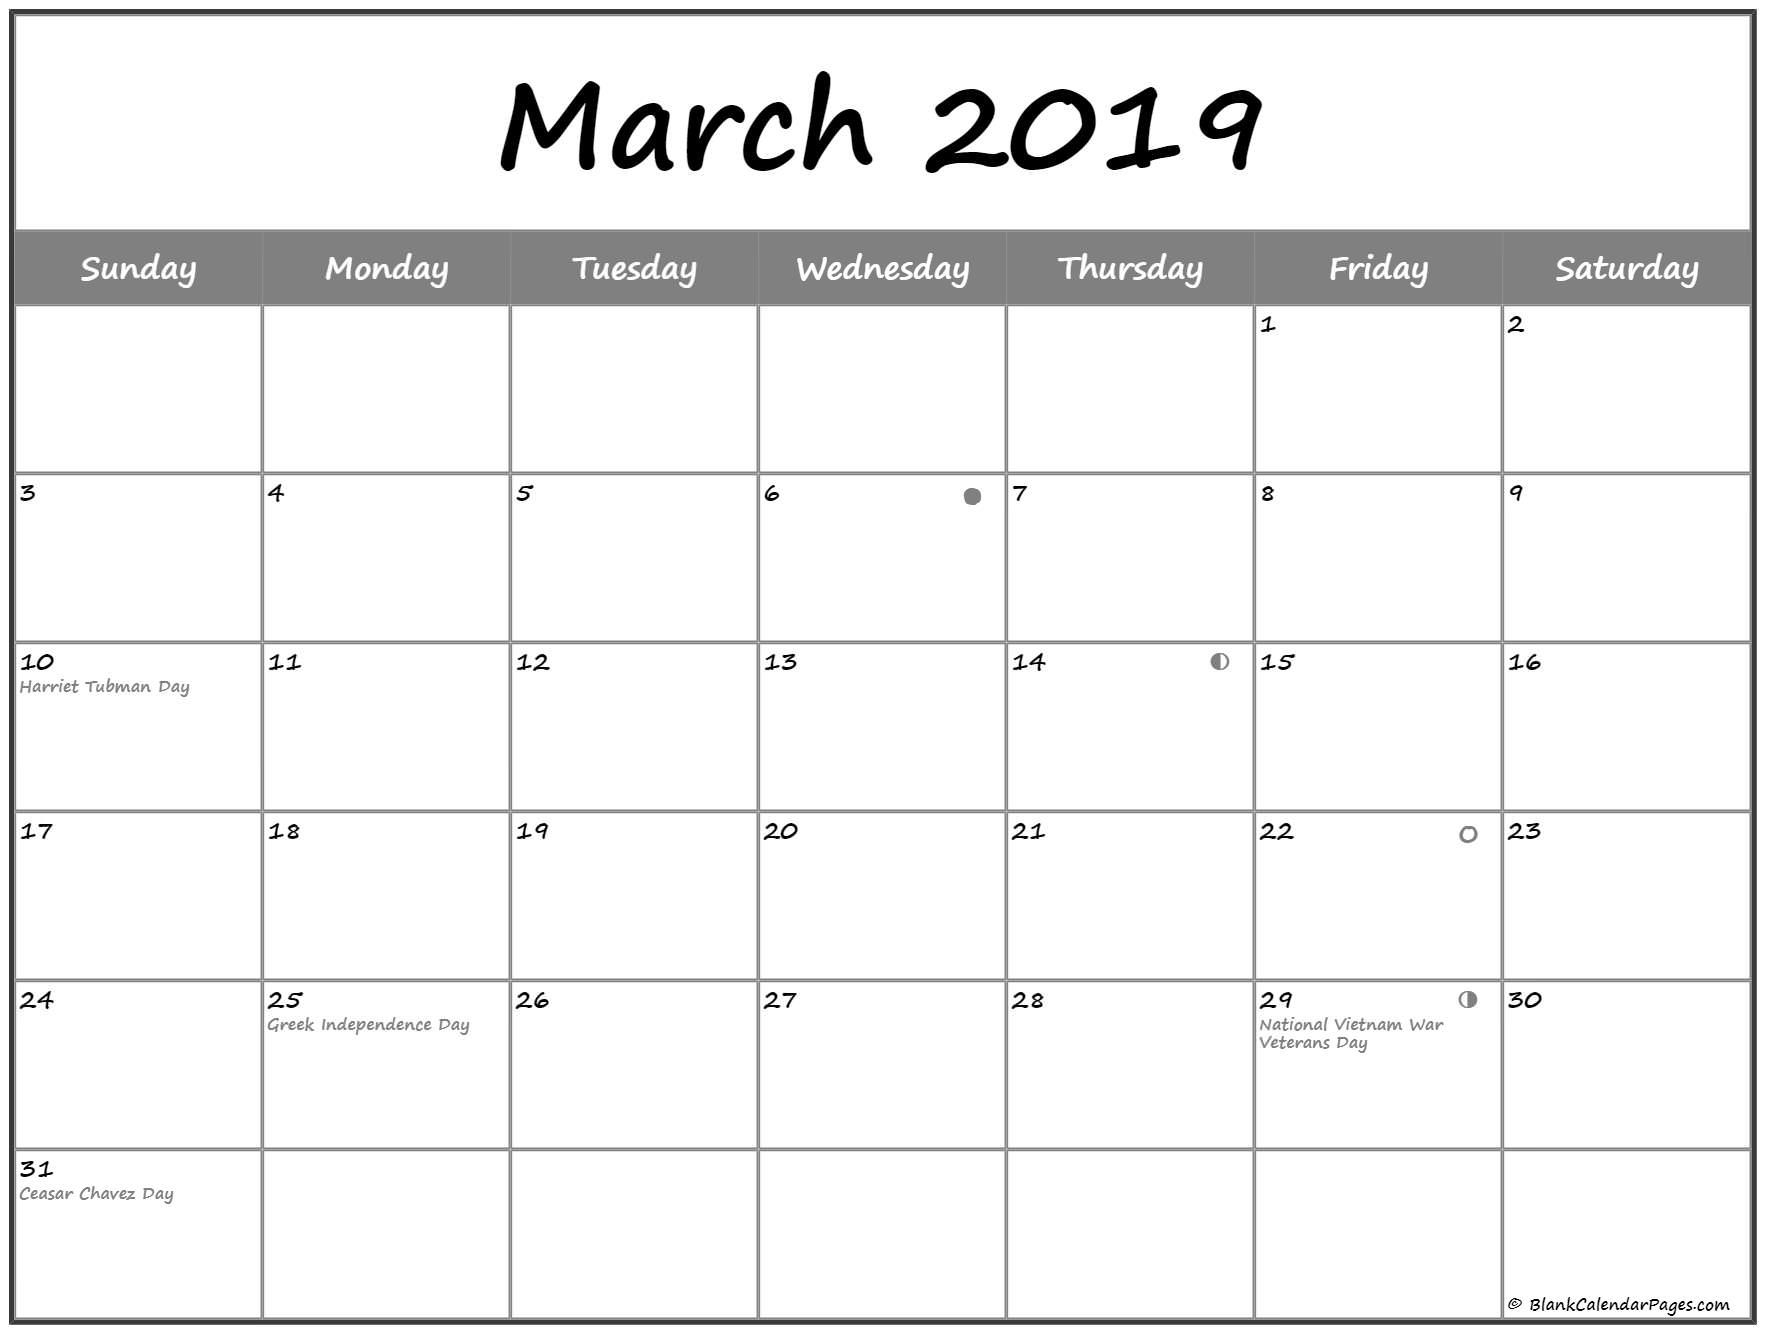 March 2019 Lunar Calendar Moon Phases